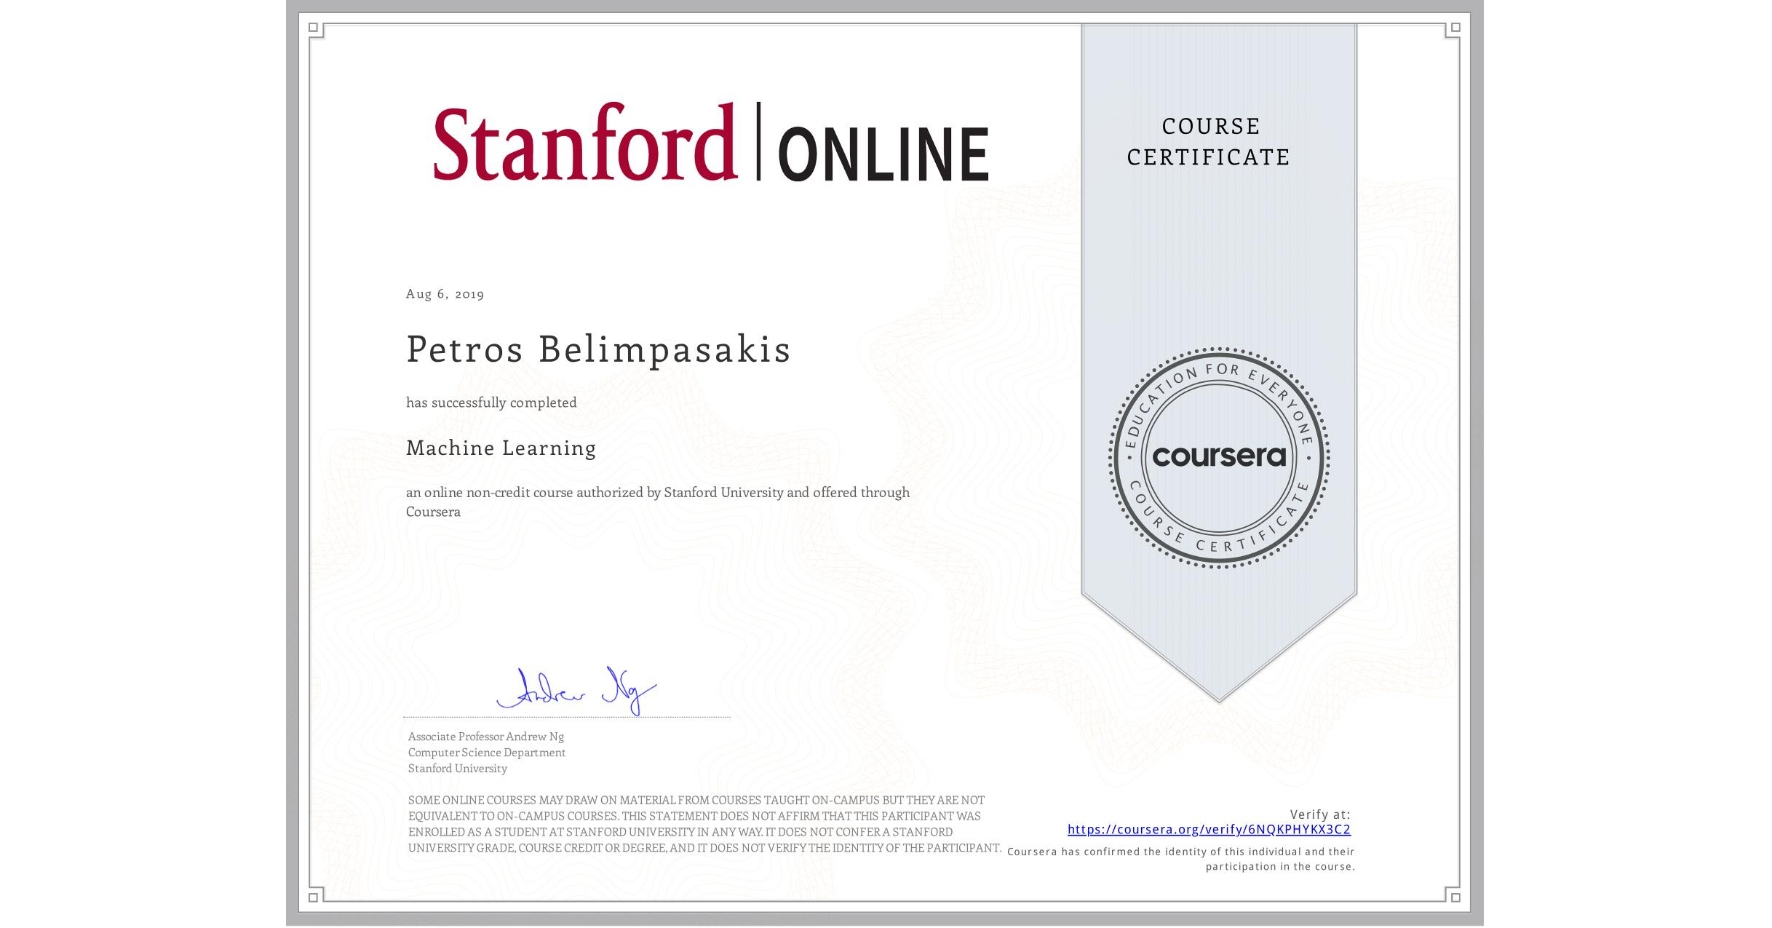 View certificate for Petros Belimpasakis, Machine Learning, an online non-credit course authorized by Stanford University and offered through Coursera